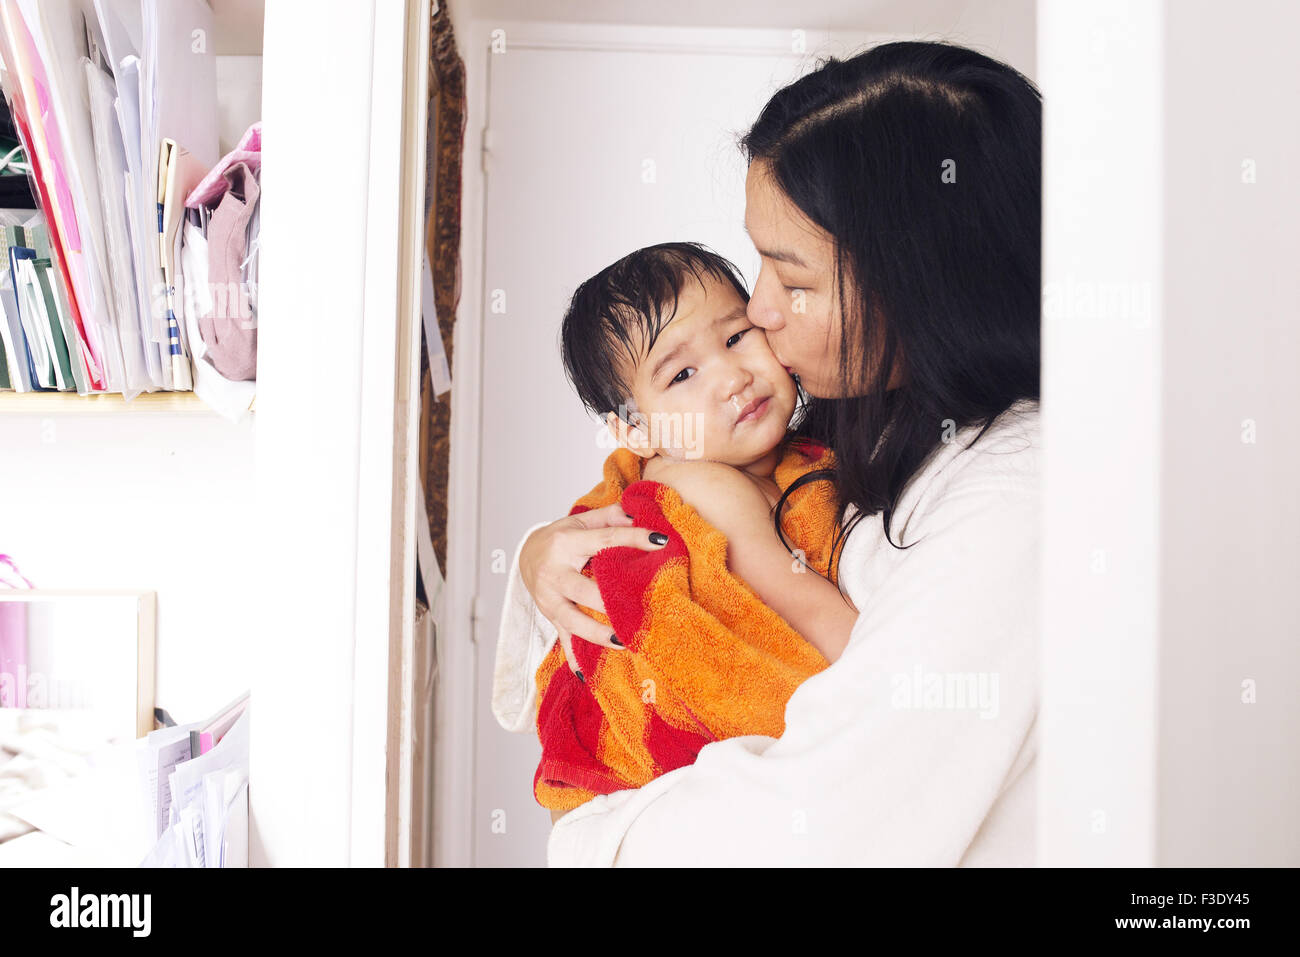 Mother comforting young son after a bath - Stock Image